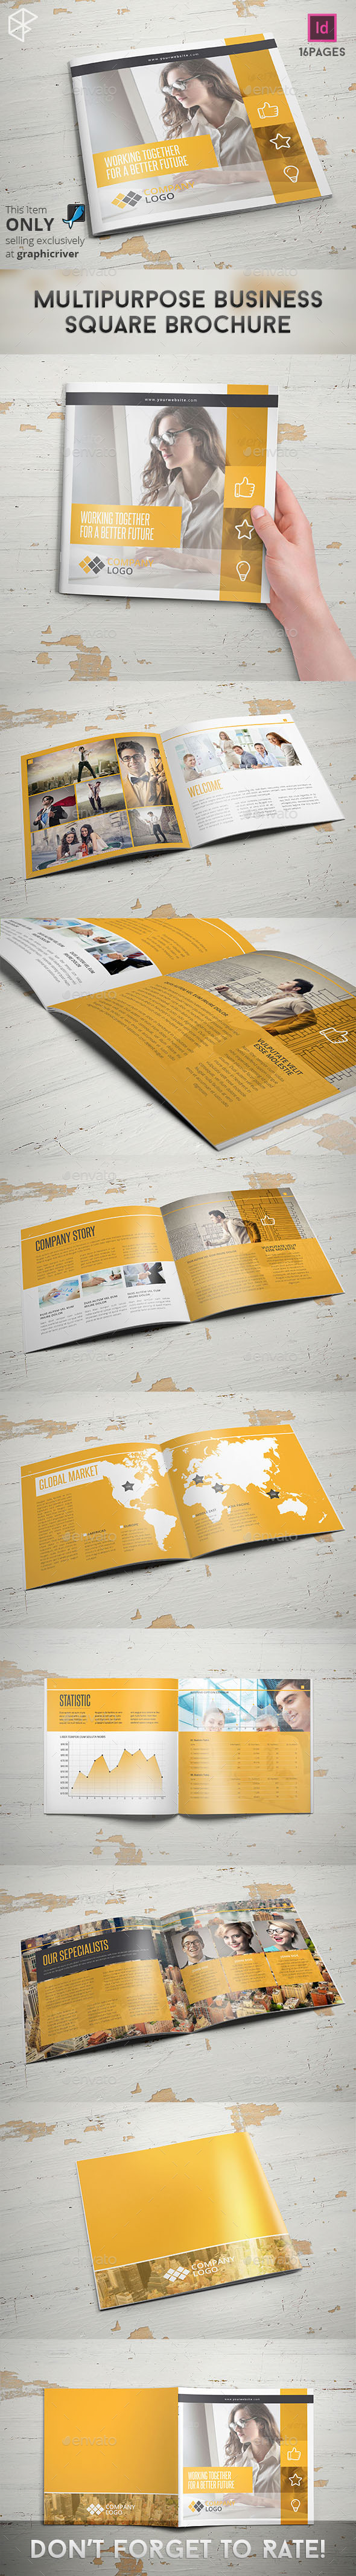 GraphicRiver Multipurpose Business Square Brochure 11376630